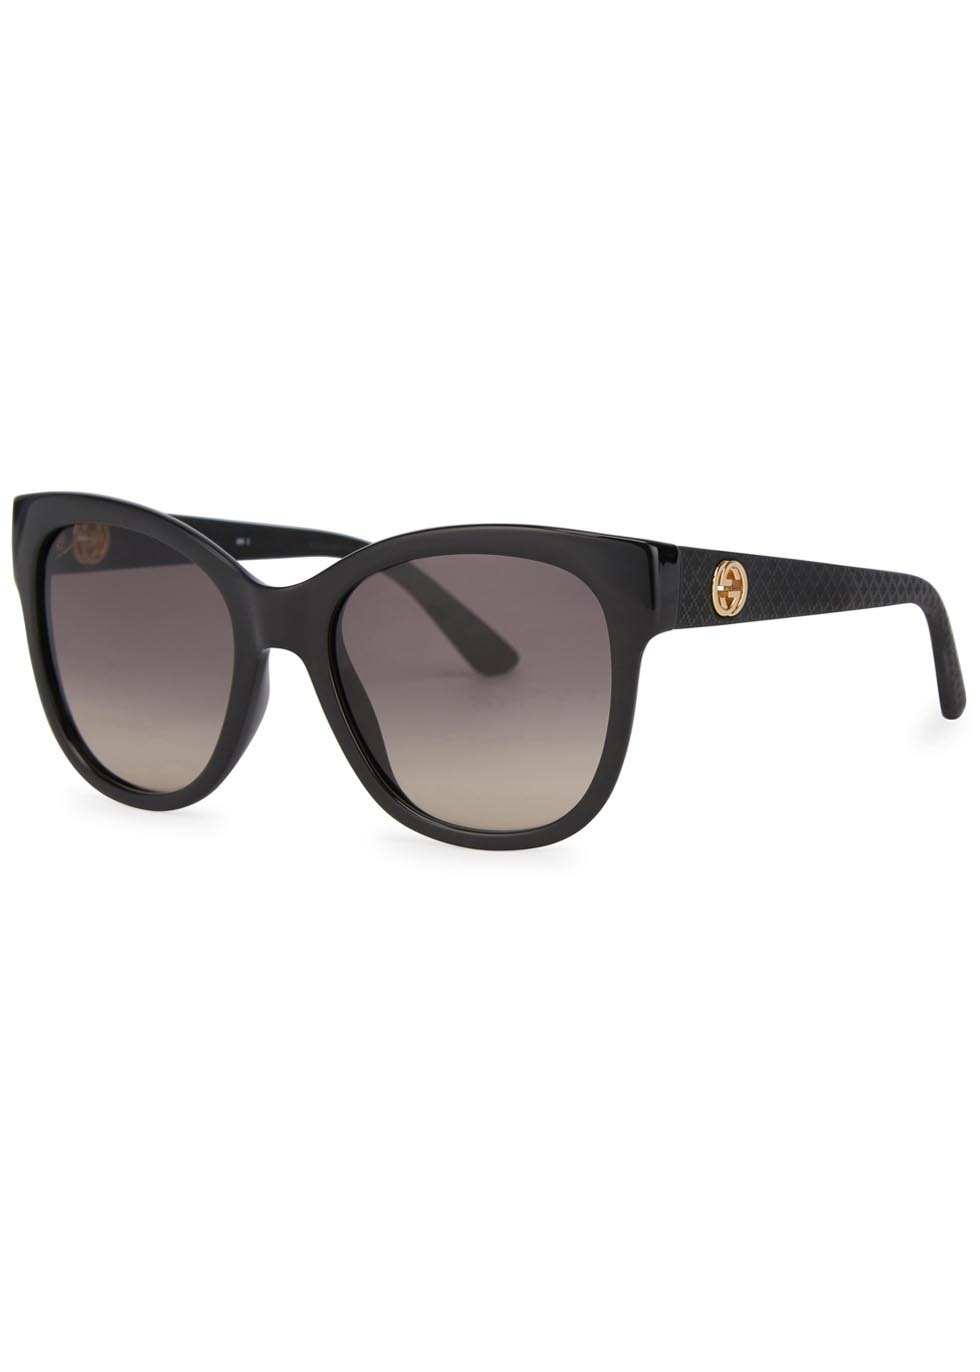 Black Cat Eye Sunglasses - predominant colour: black; occasions: casual, holiday; style: cateye; size: large; material: plastic/rubber; pattern: plain; finish: plain; season: a/w 2015